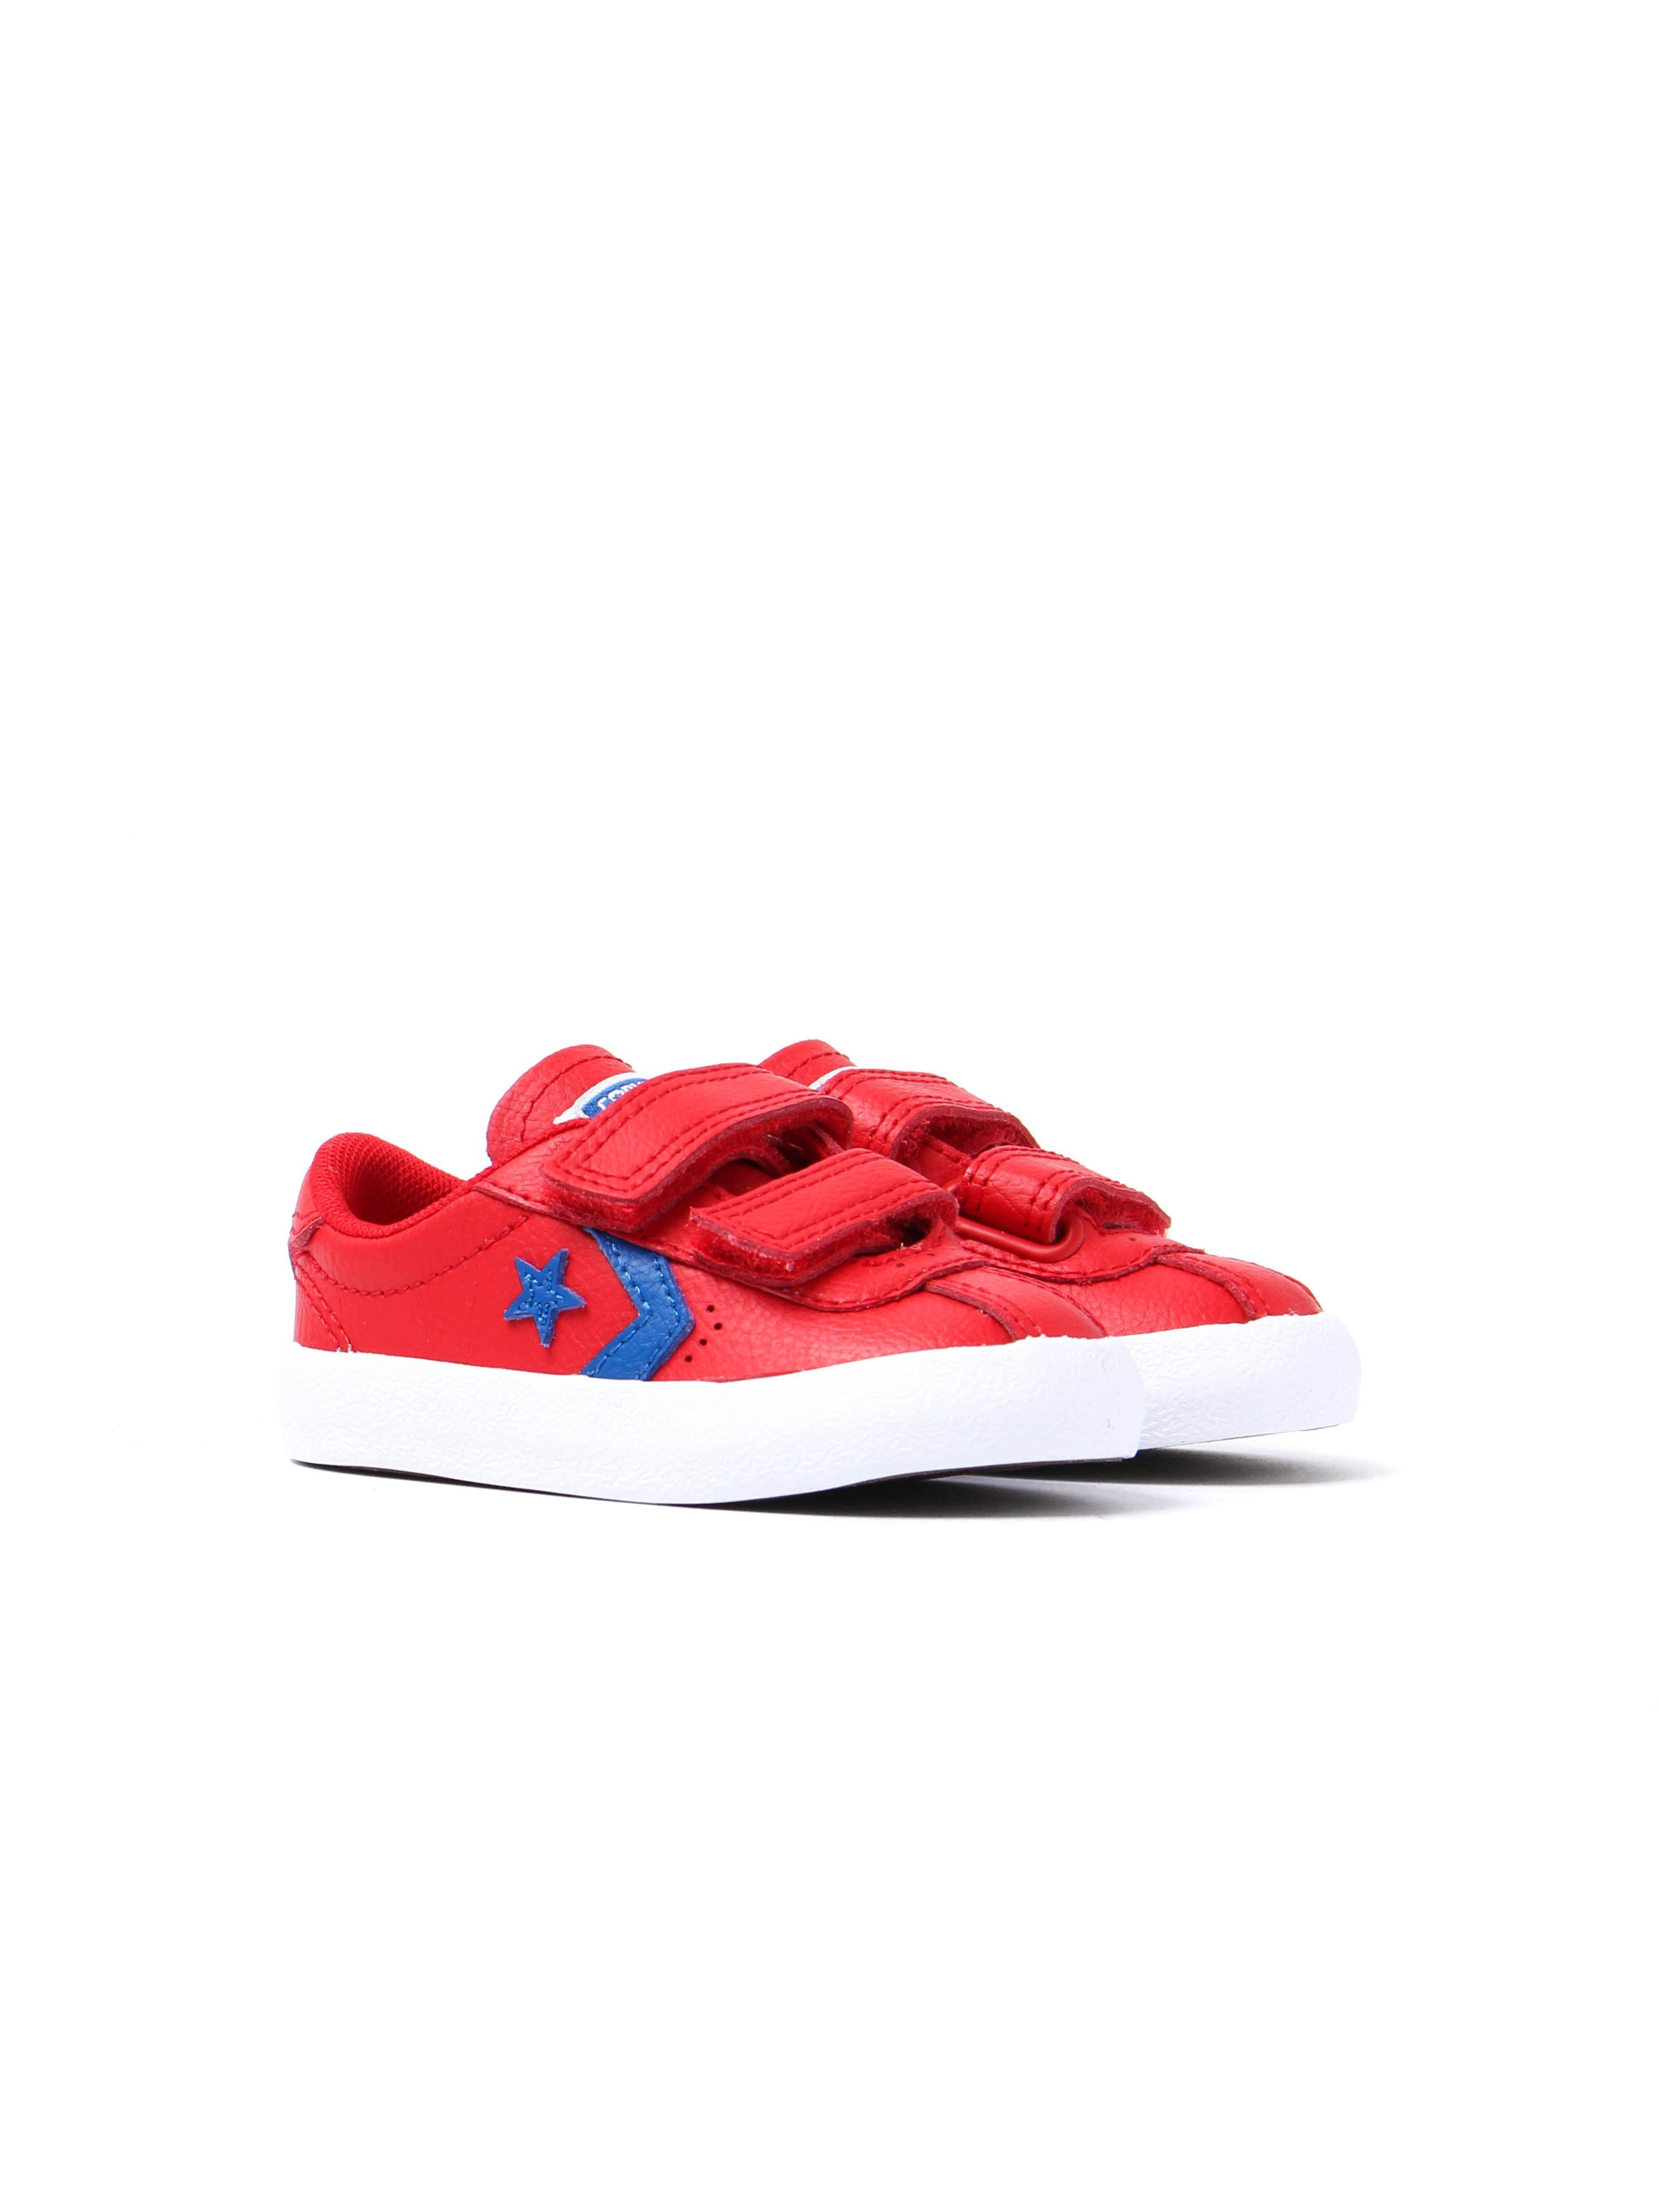 Converse Infants Breakpoint 2V Leather Trainers - Casino Red